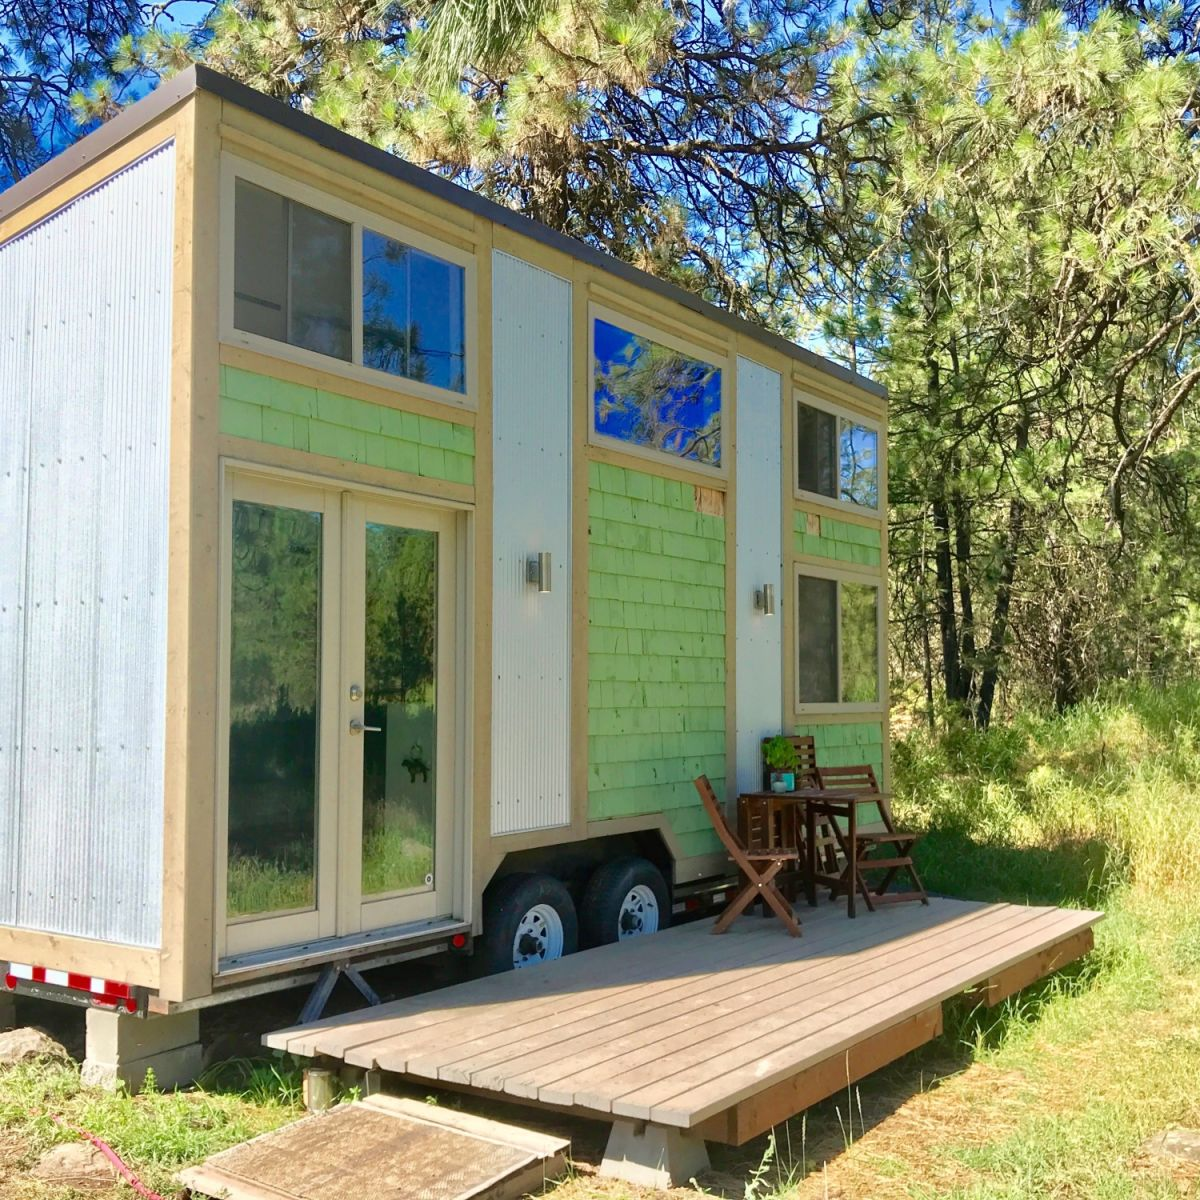 Professionally Built California Cabin Tiny House For